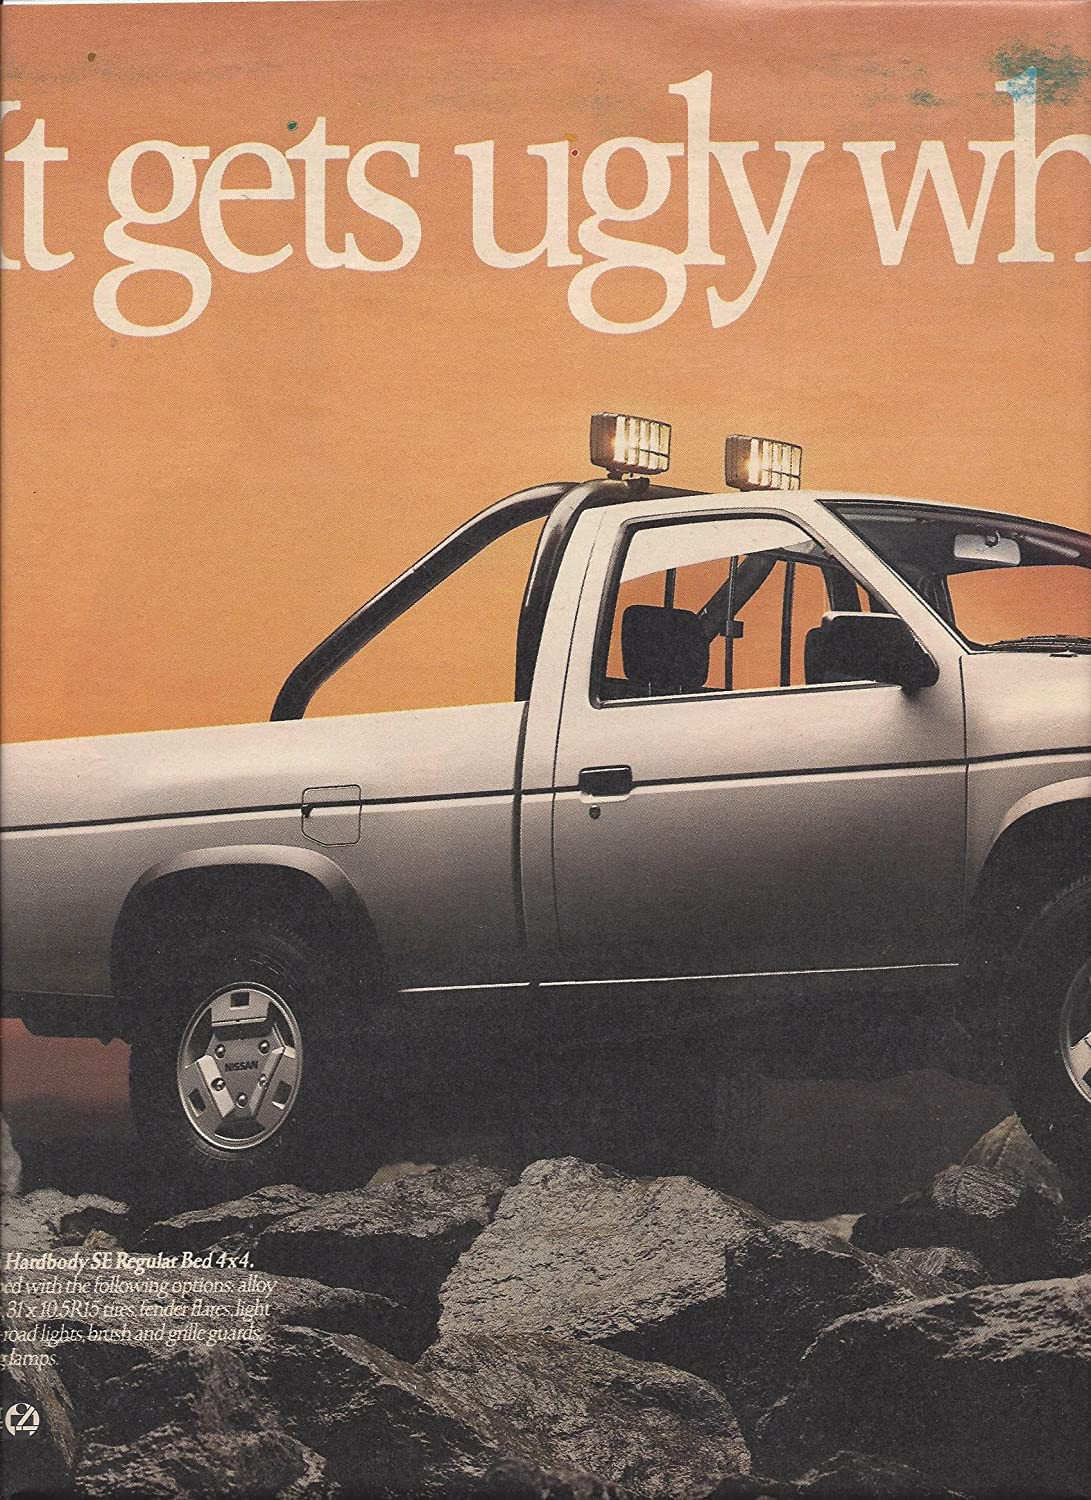 Print Ad For 1988 Silver Nissan Hardbody Se Truck It Gets Ugly When Hard 4x4 Pickup You Drive At Amazons Entertainment Collectibles Store